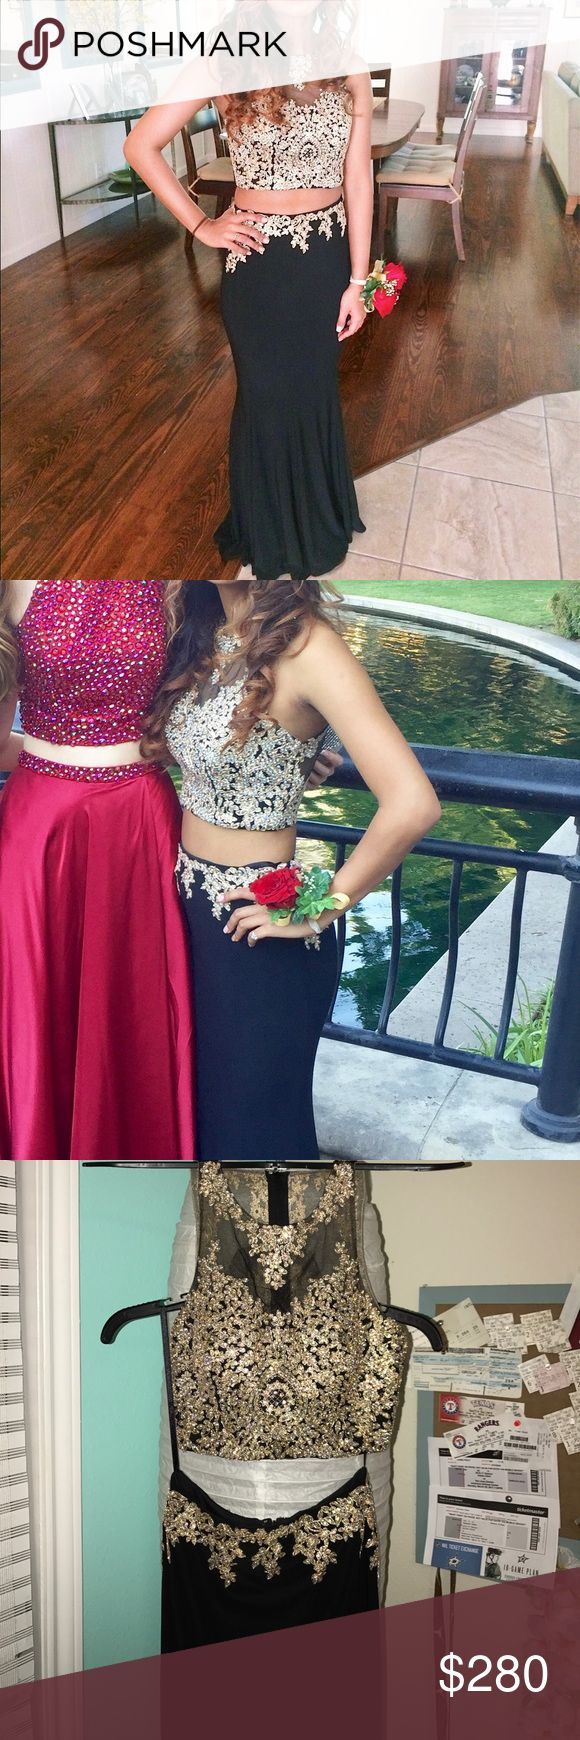 Black and gold two piece prom dress Anny Lee prom dress! XS (I usually wear a small) In perfect condition! Worn once! Anny Lee Dresses Prom